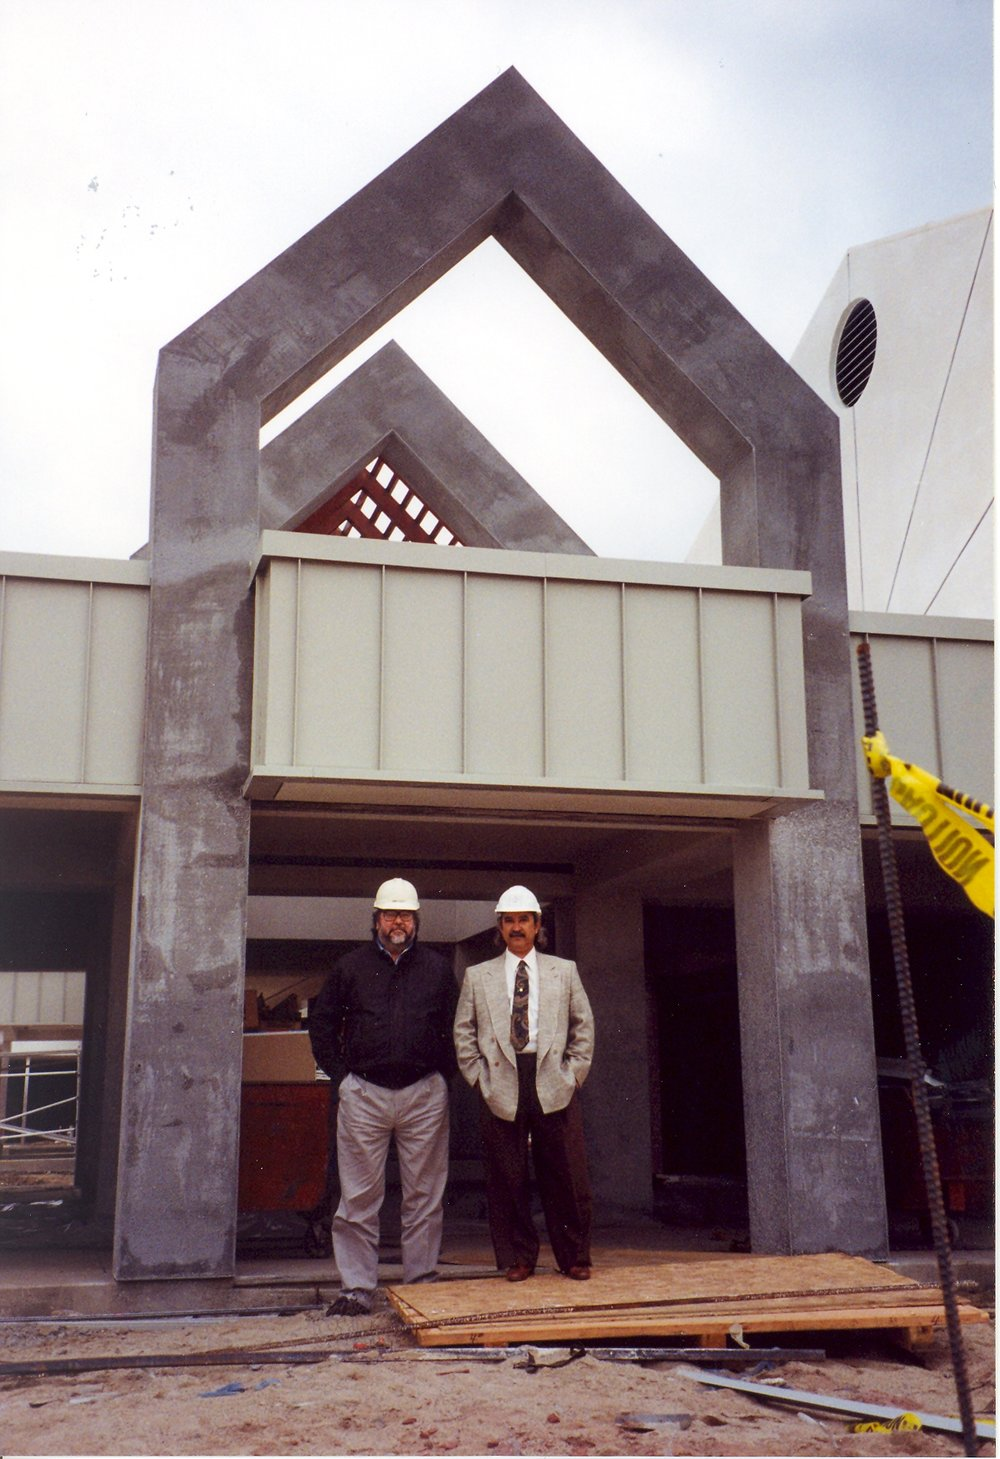 (1993) Founding Partners Mark Holley, AIA (left) and Robert Machado, AIA (right) at Brookside Elementary School - Lincoln Unified School District